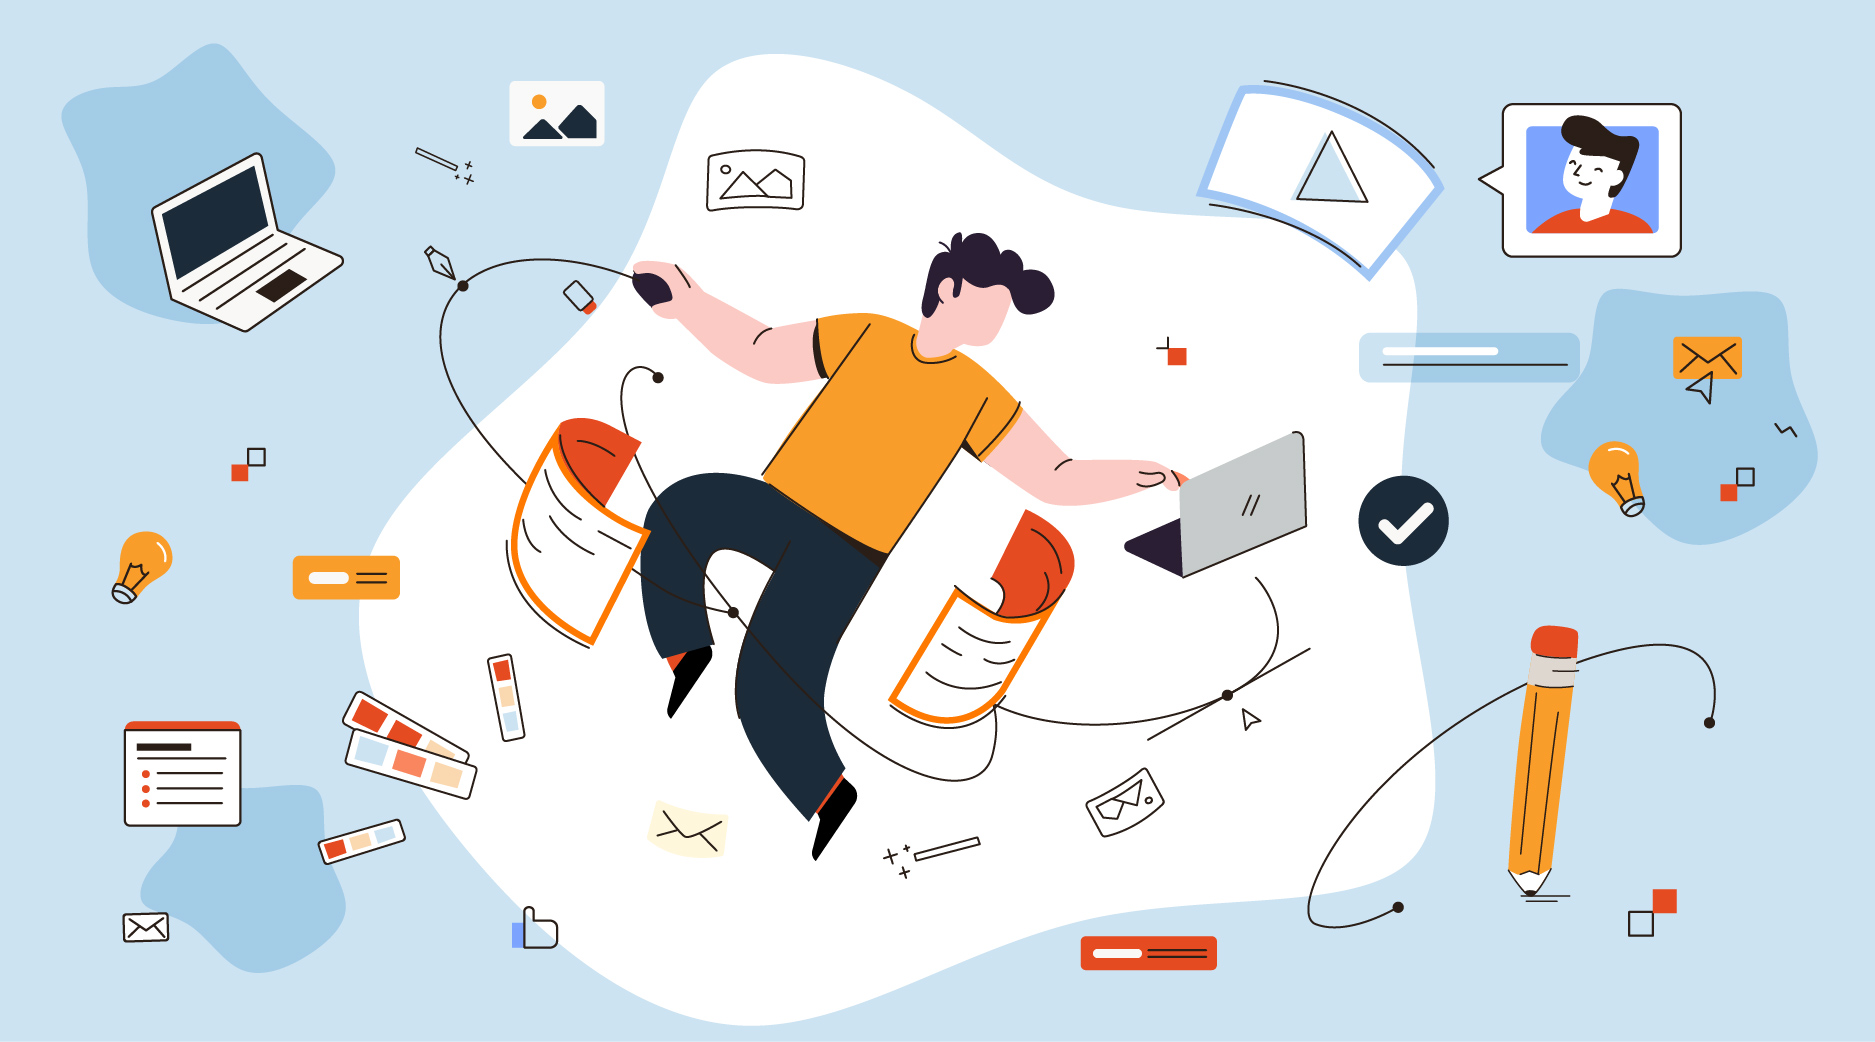 A digital creative person floating in the air surrounded by their tools